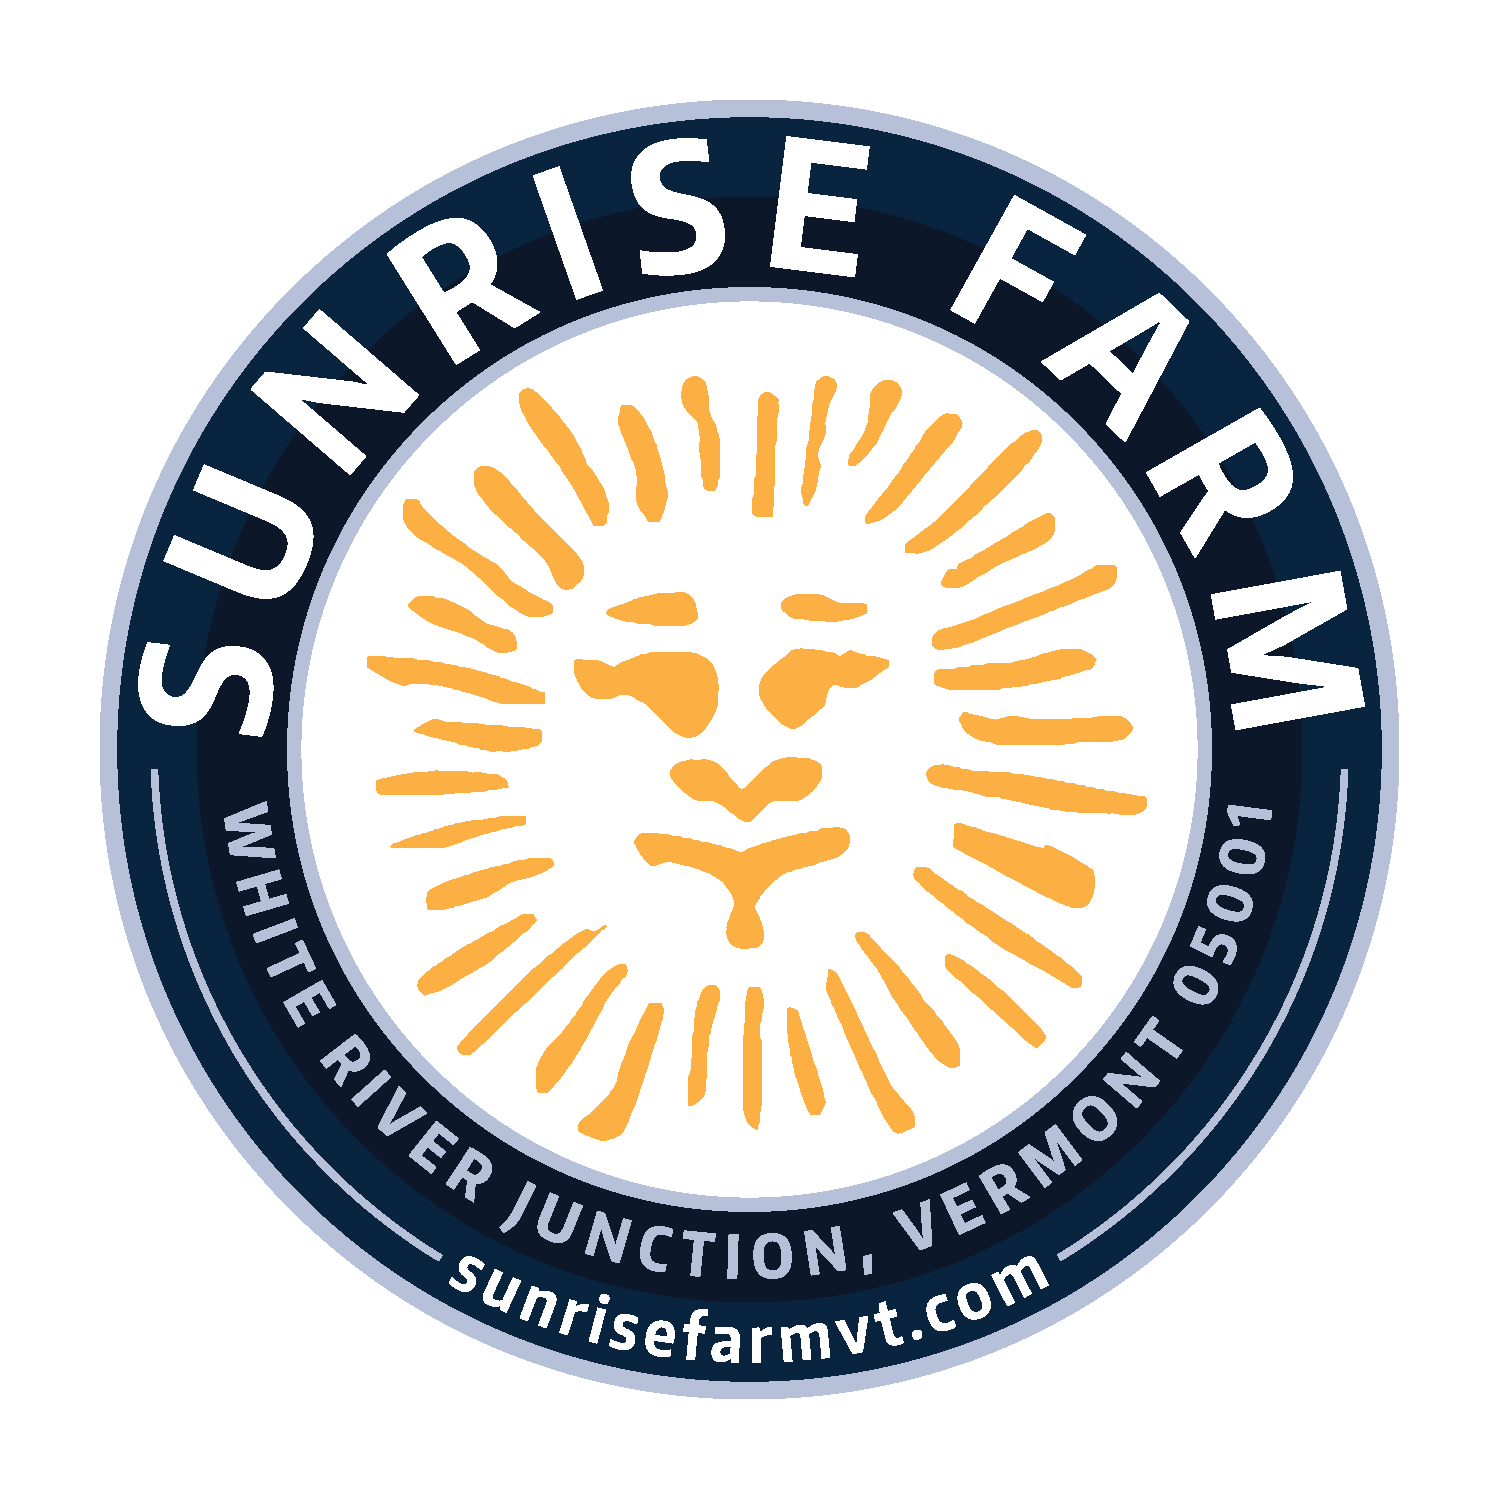 Sunrise Farm